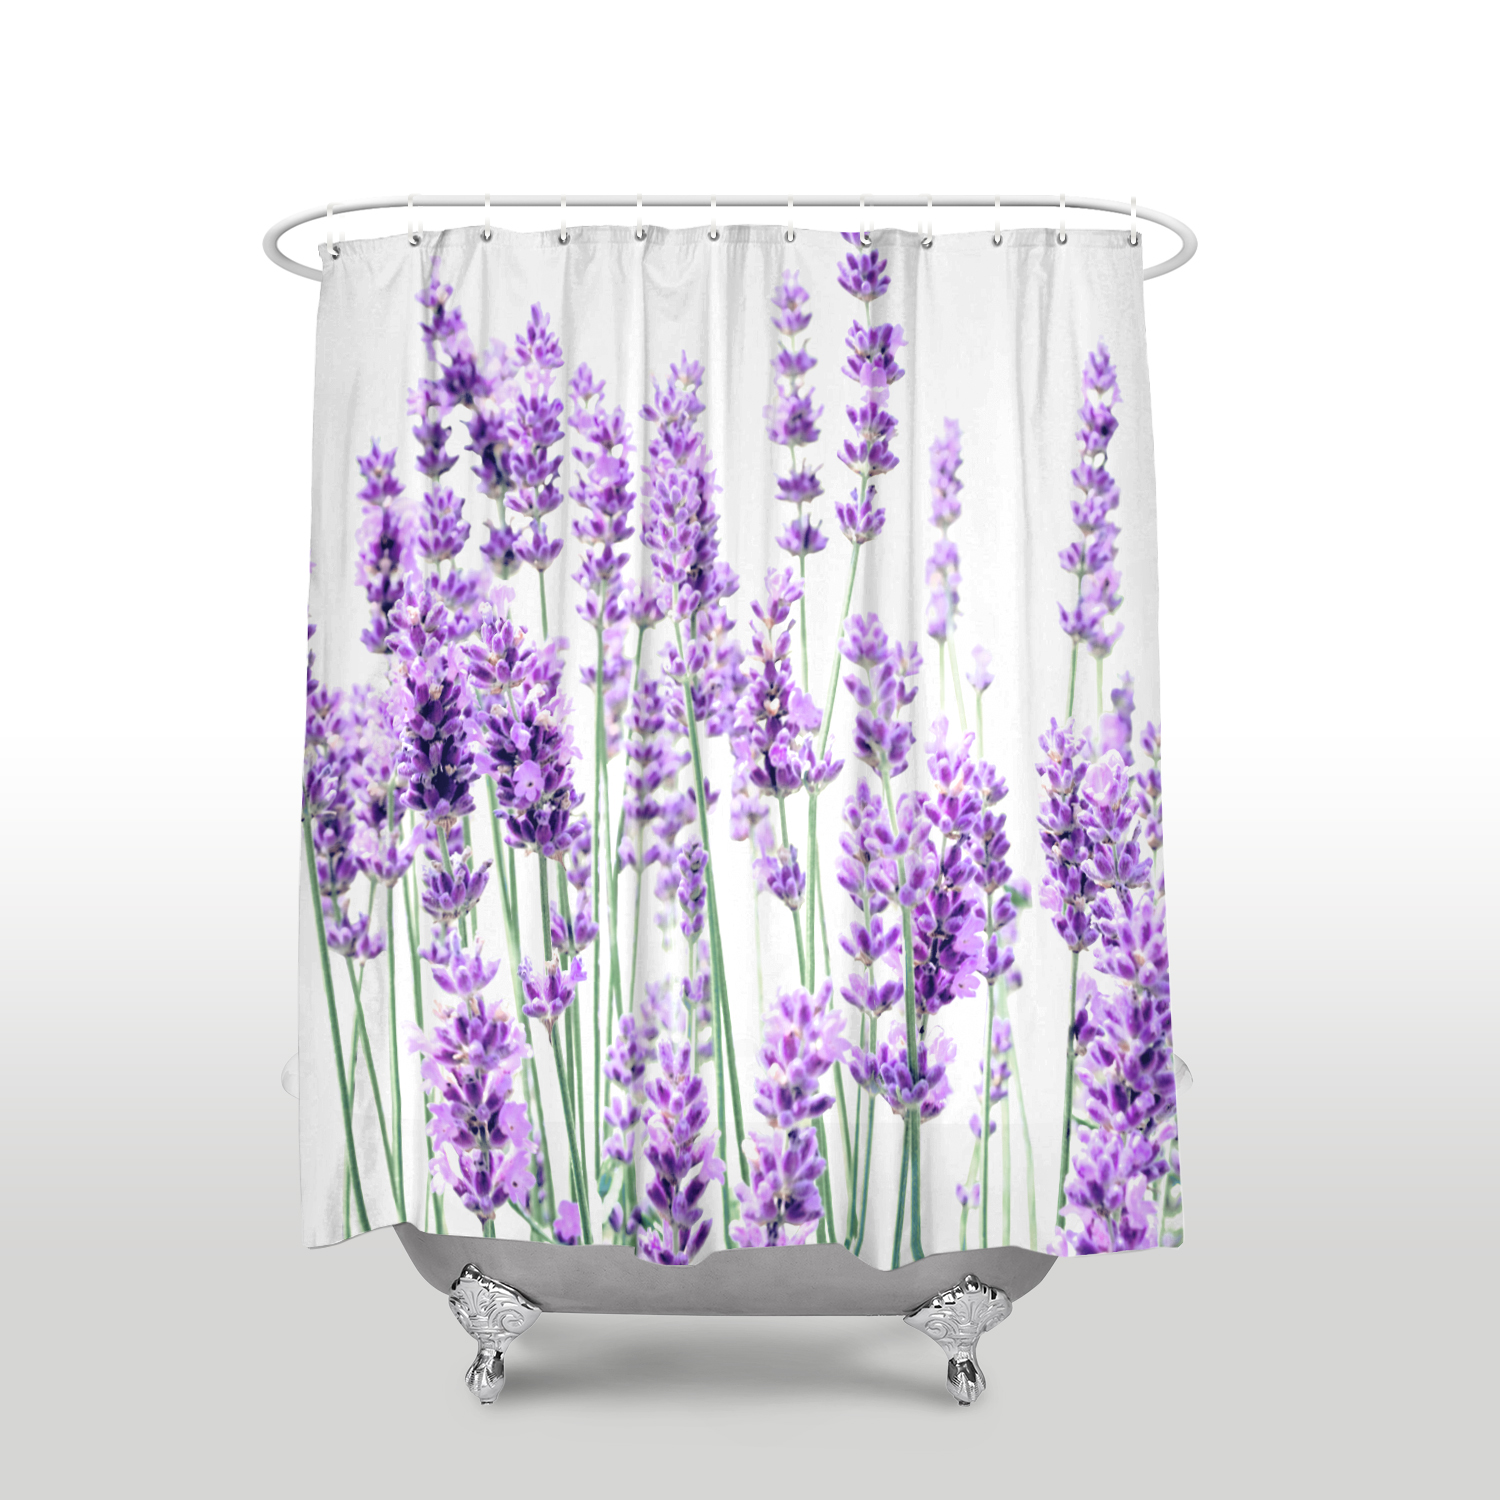 New Arrival Waterproof Lavender Shower Curtain with Hooks ... - photo#31